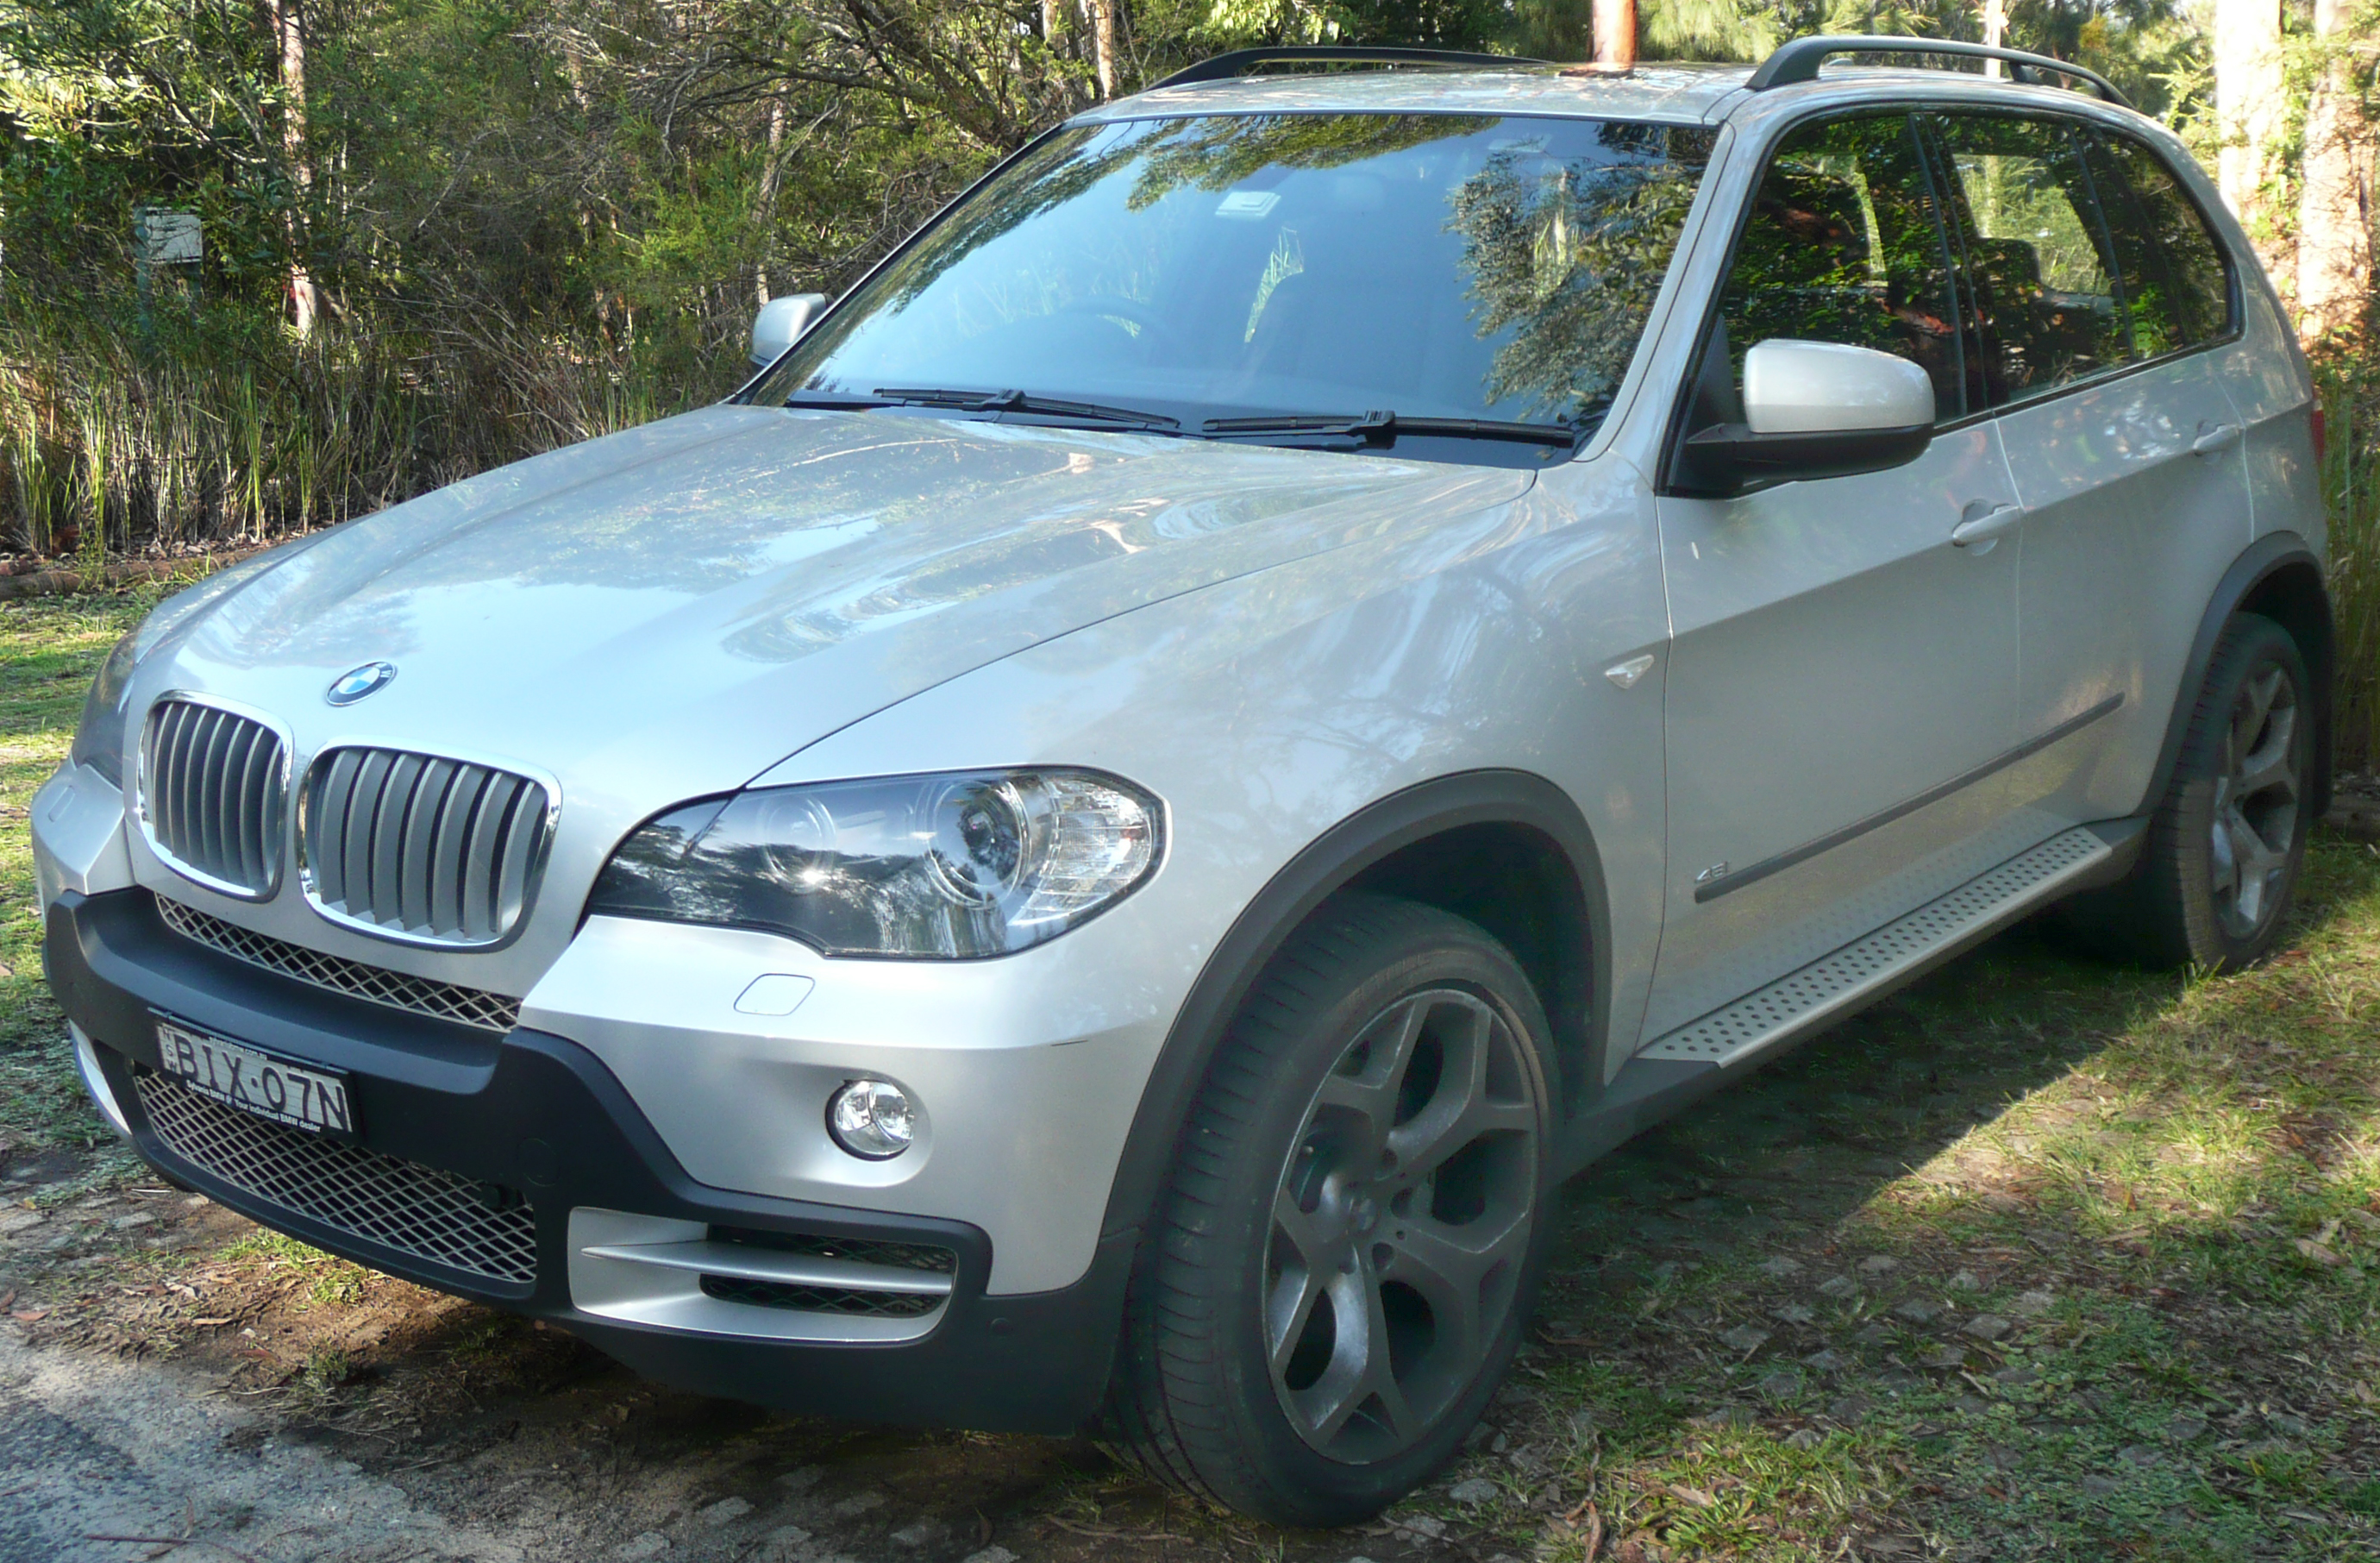 buy online used car 2007 bmw x5 e70 with cheap prices. Black Bedroom Furniture Sets. Home Design Ideas